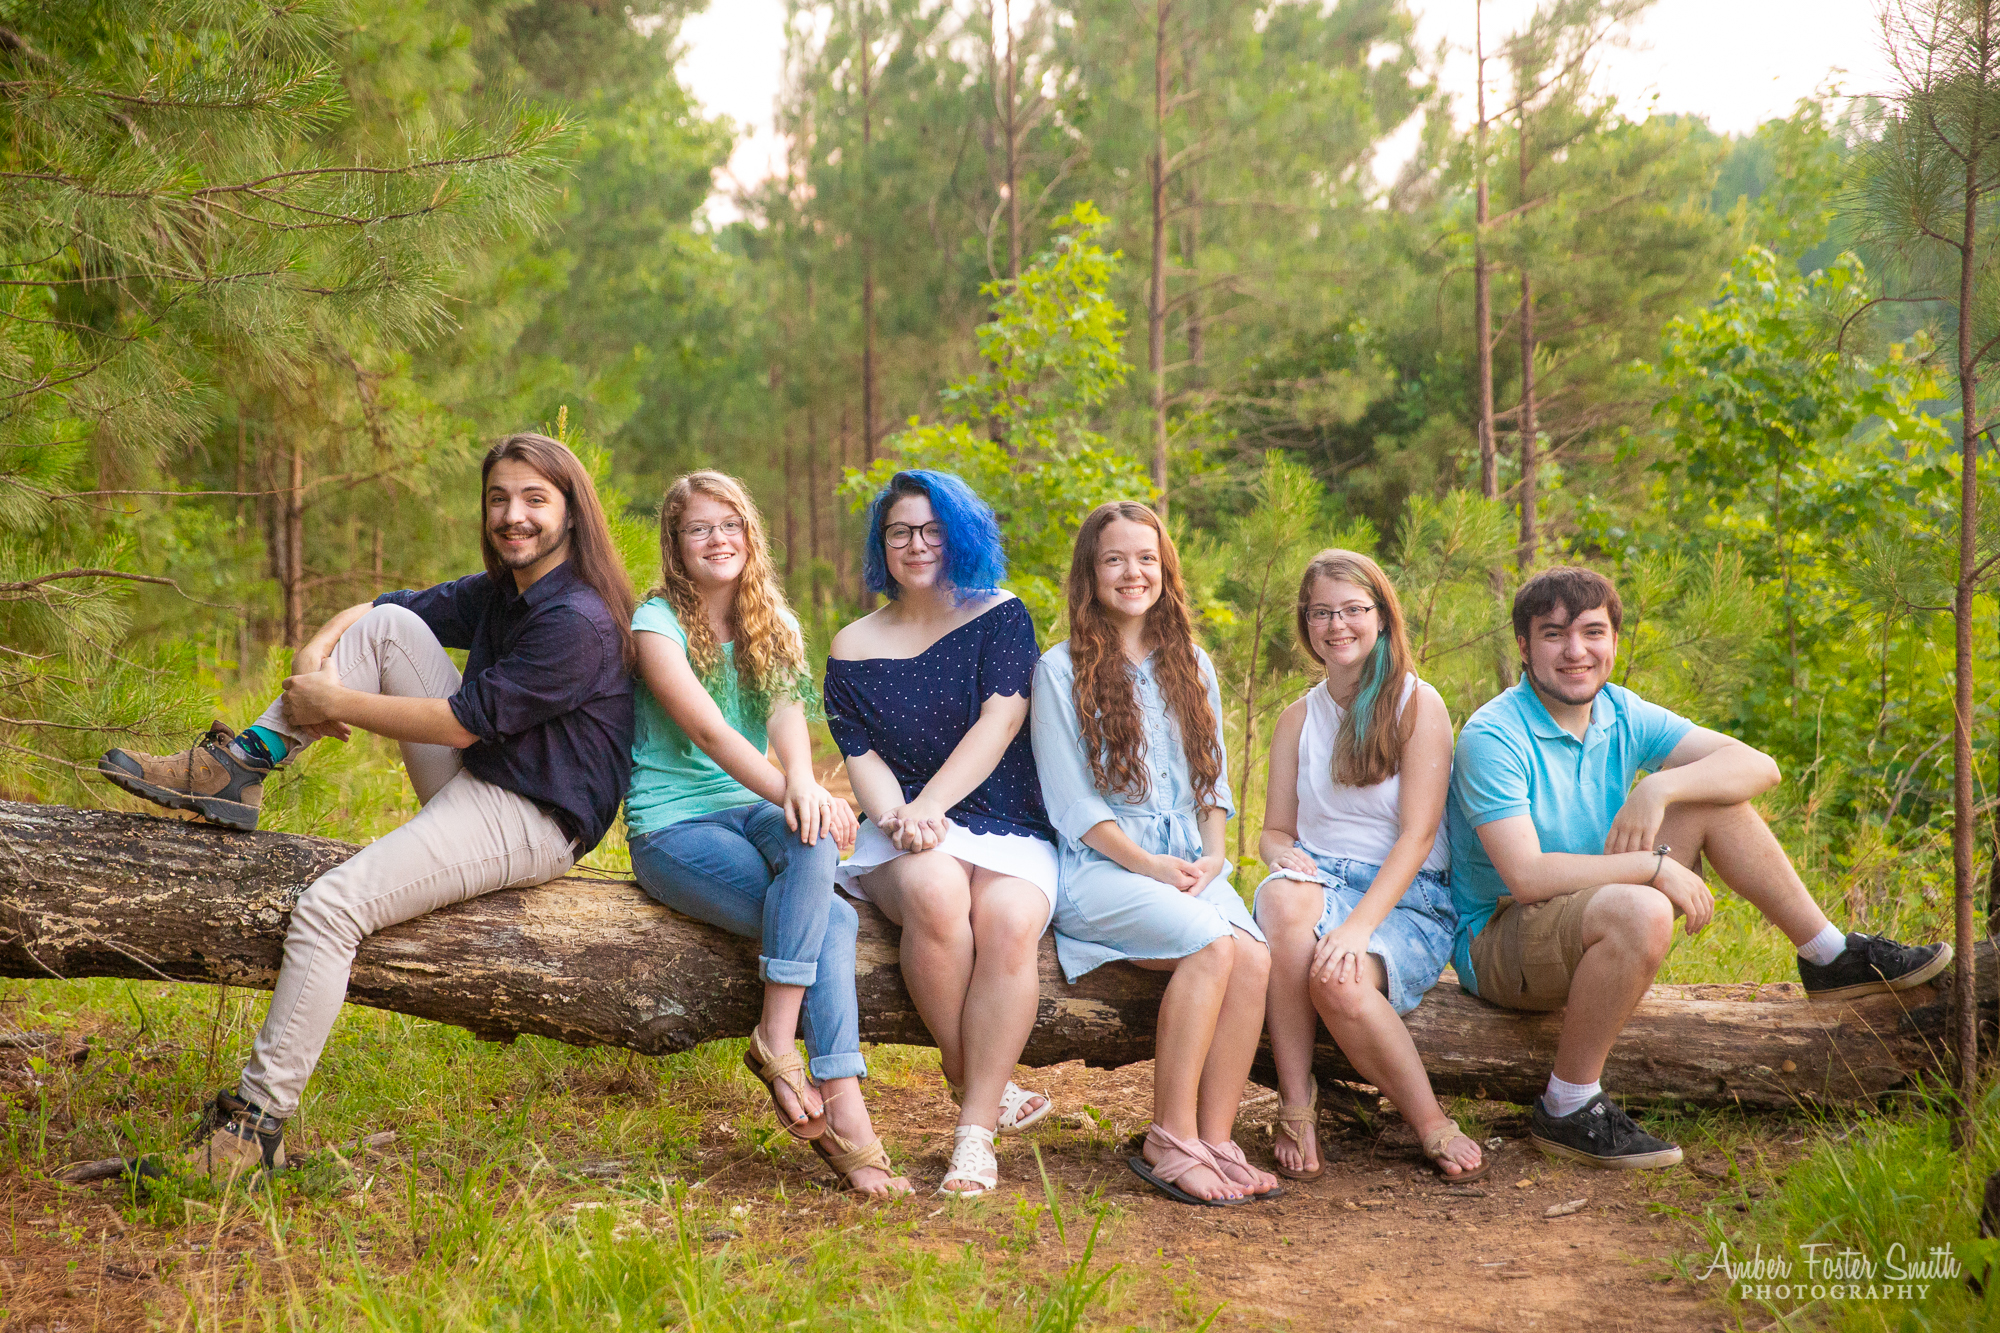 Amber Foster Smith Photography - Family Photographer in Holly springs